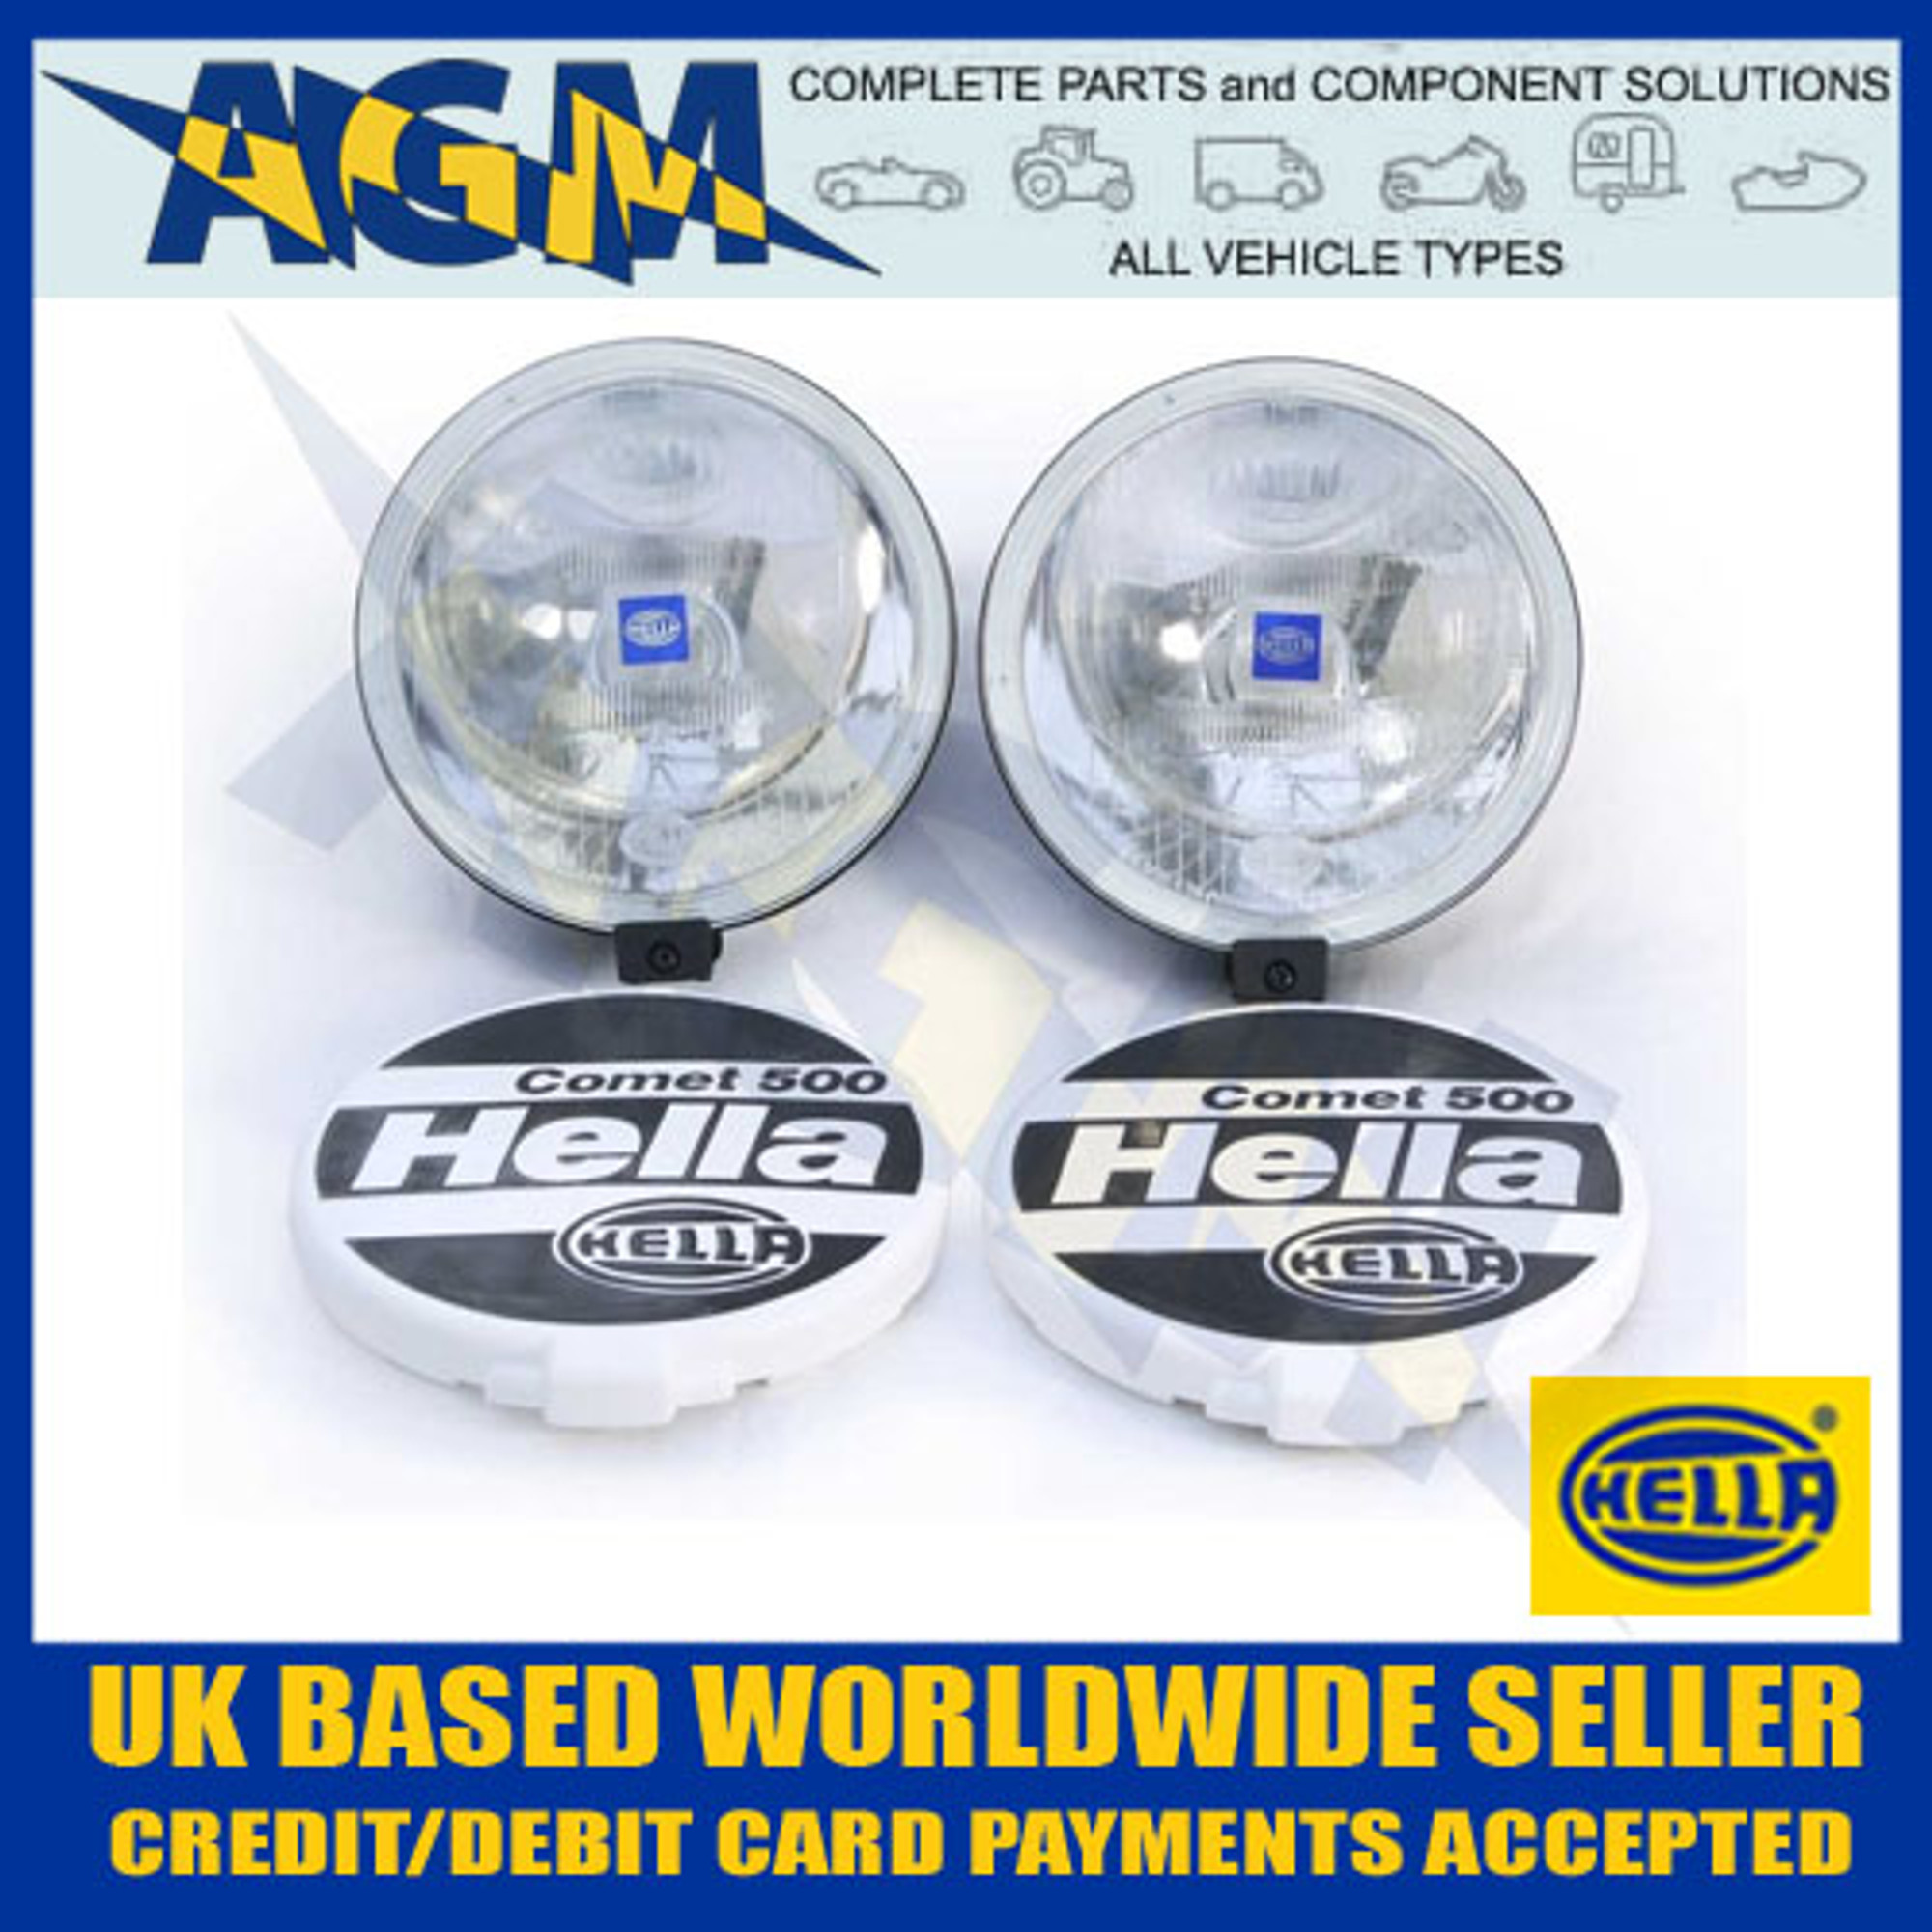 Hella Comet 500 Driving/Spot Lamp Set With Two Lamps, Covers + ing on